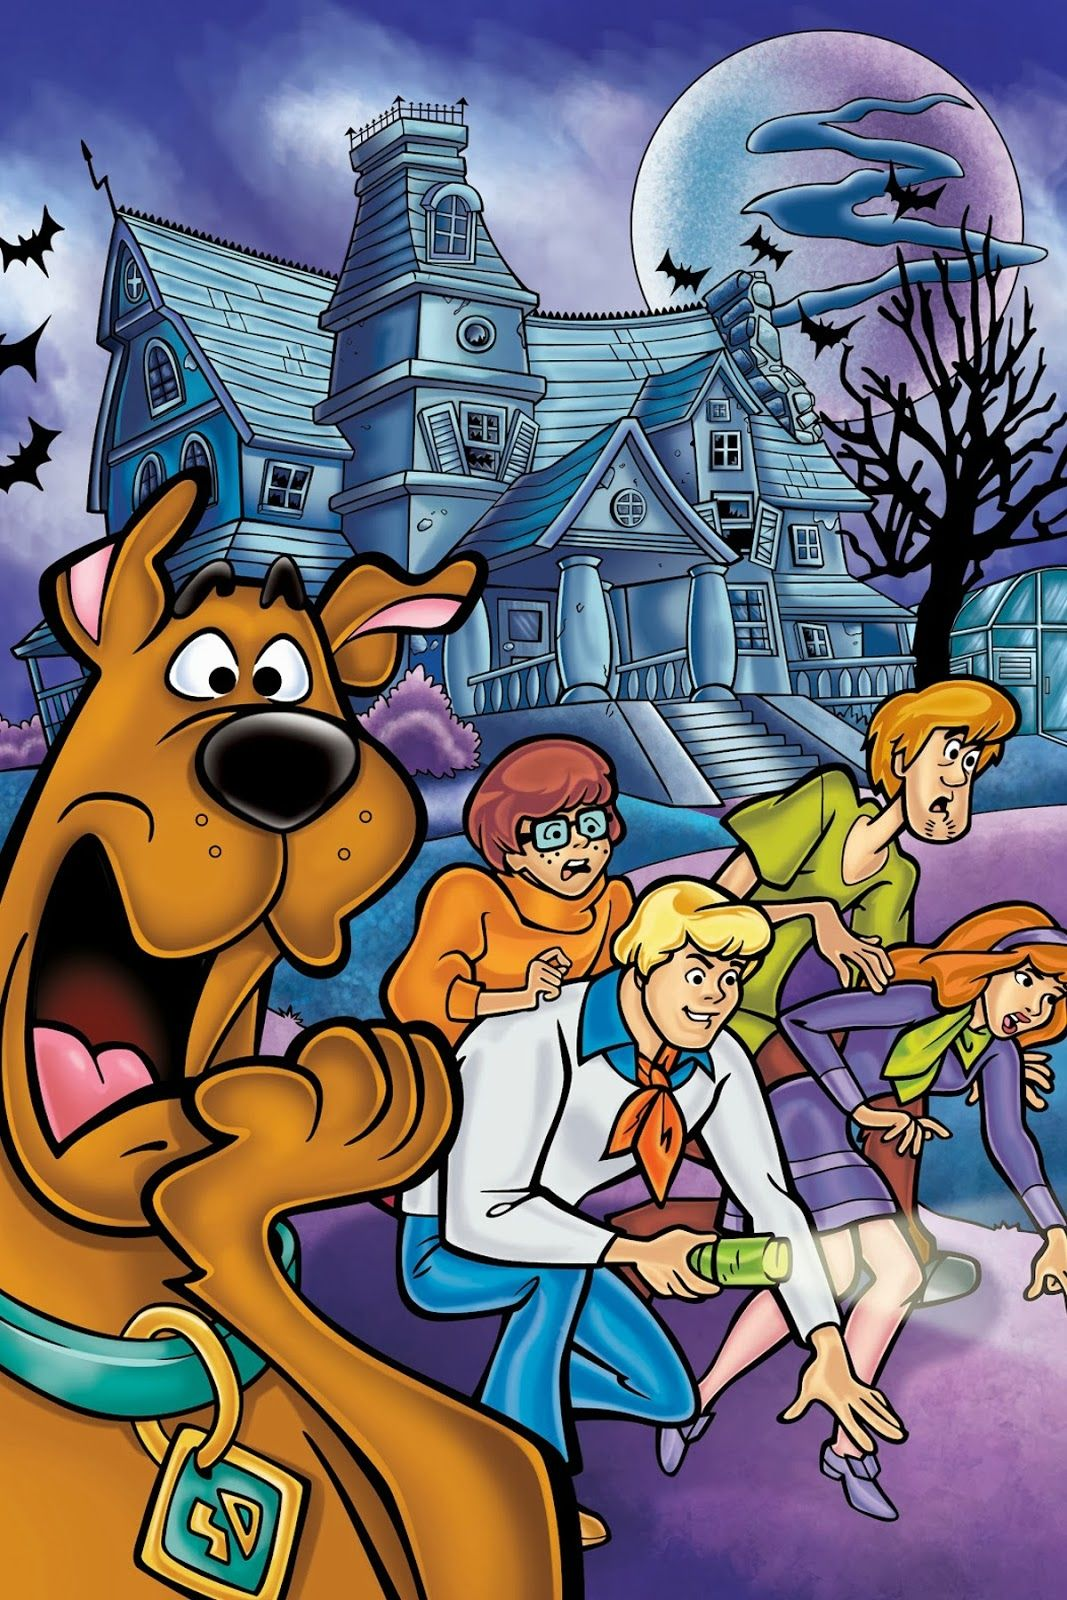 44 Scoo Doo Iphone Wallpaper On Wallpapersafari throughout